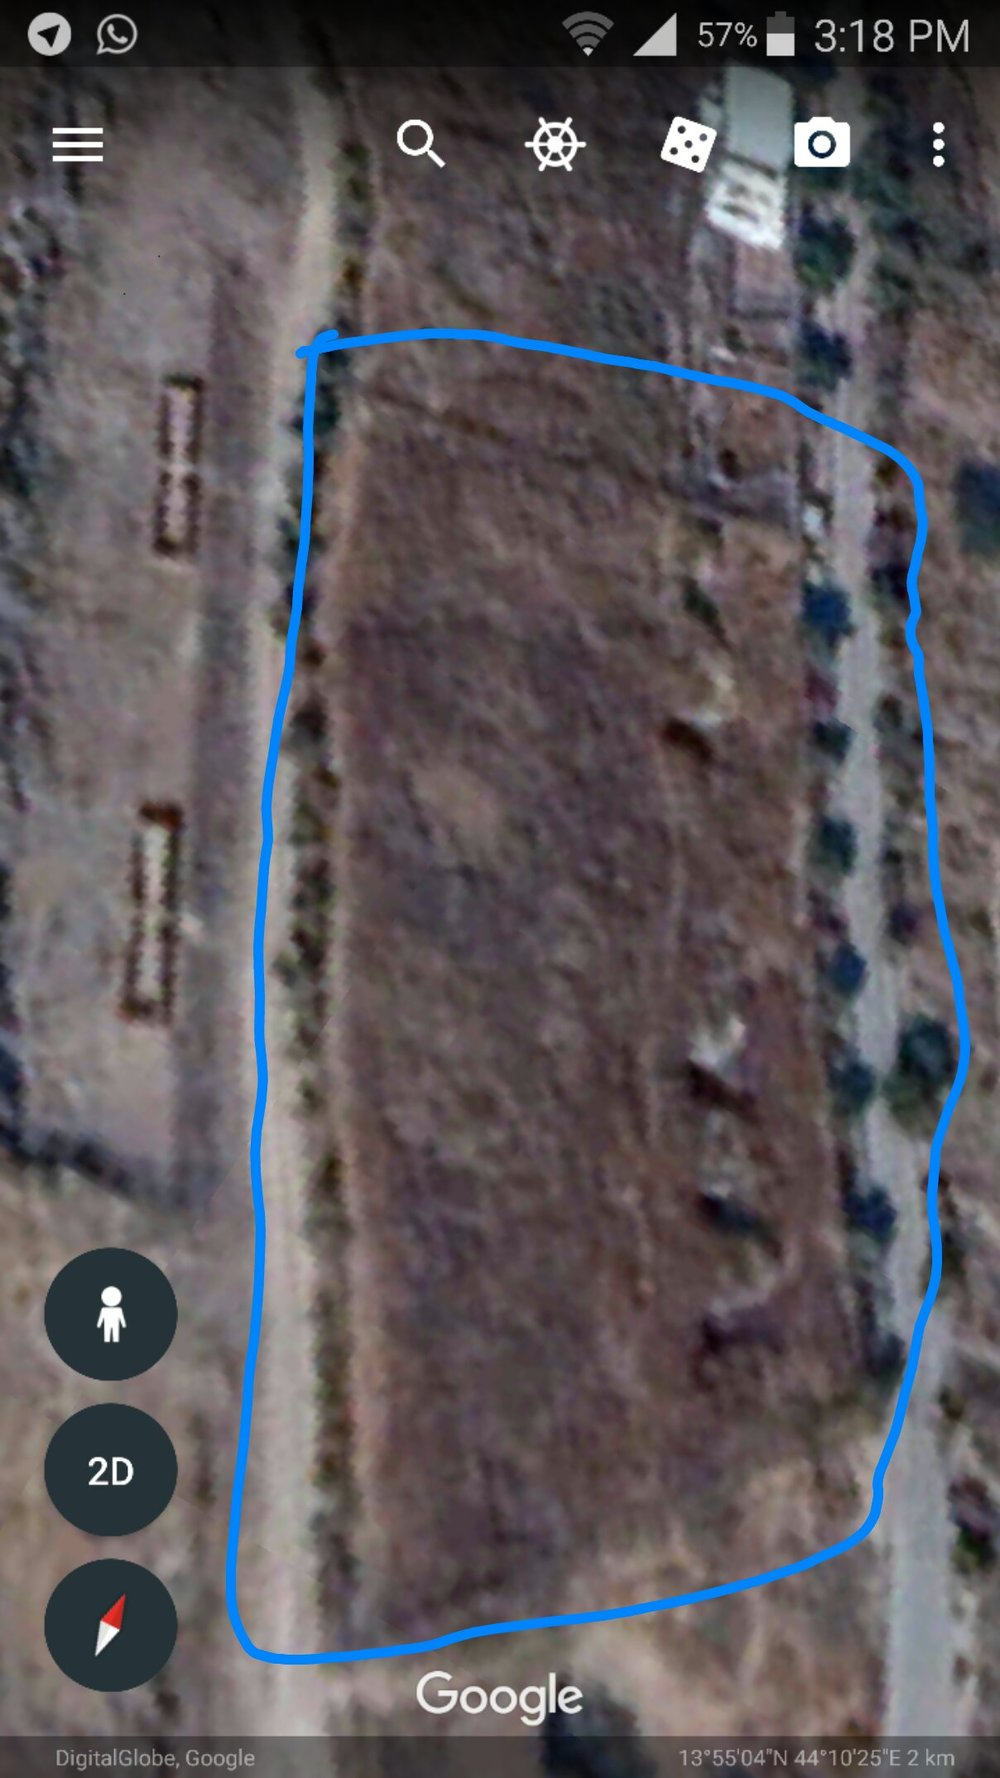 ibb zoo open range enclosure area for fencing project from HAITHAM ENGINEER 24 FEB 2018 for OWAP -AR.jpg